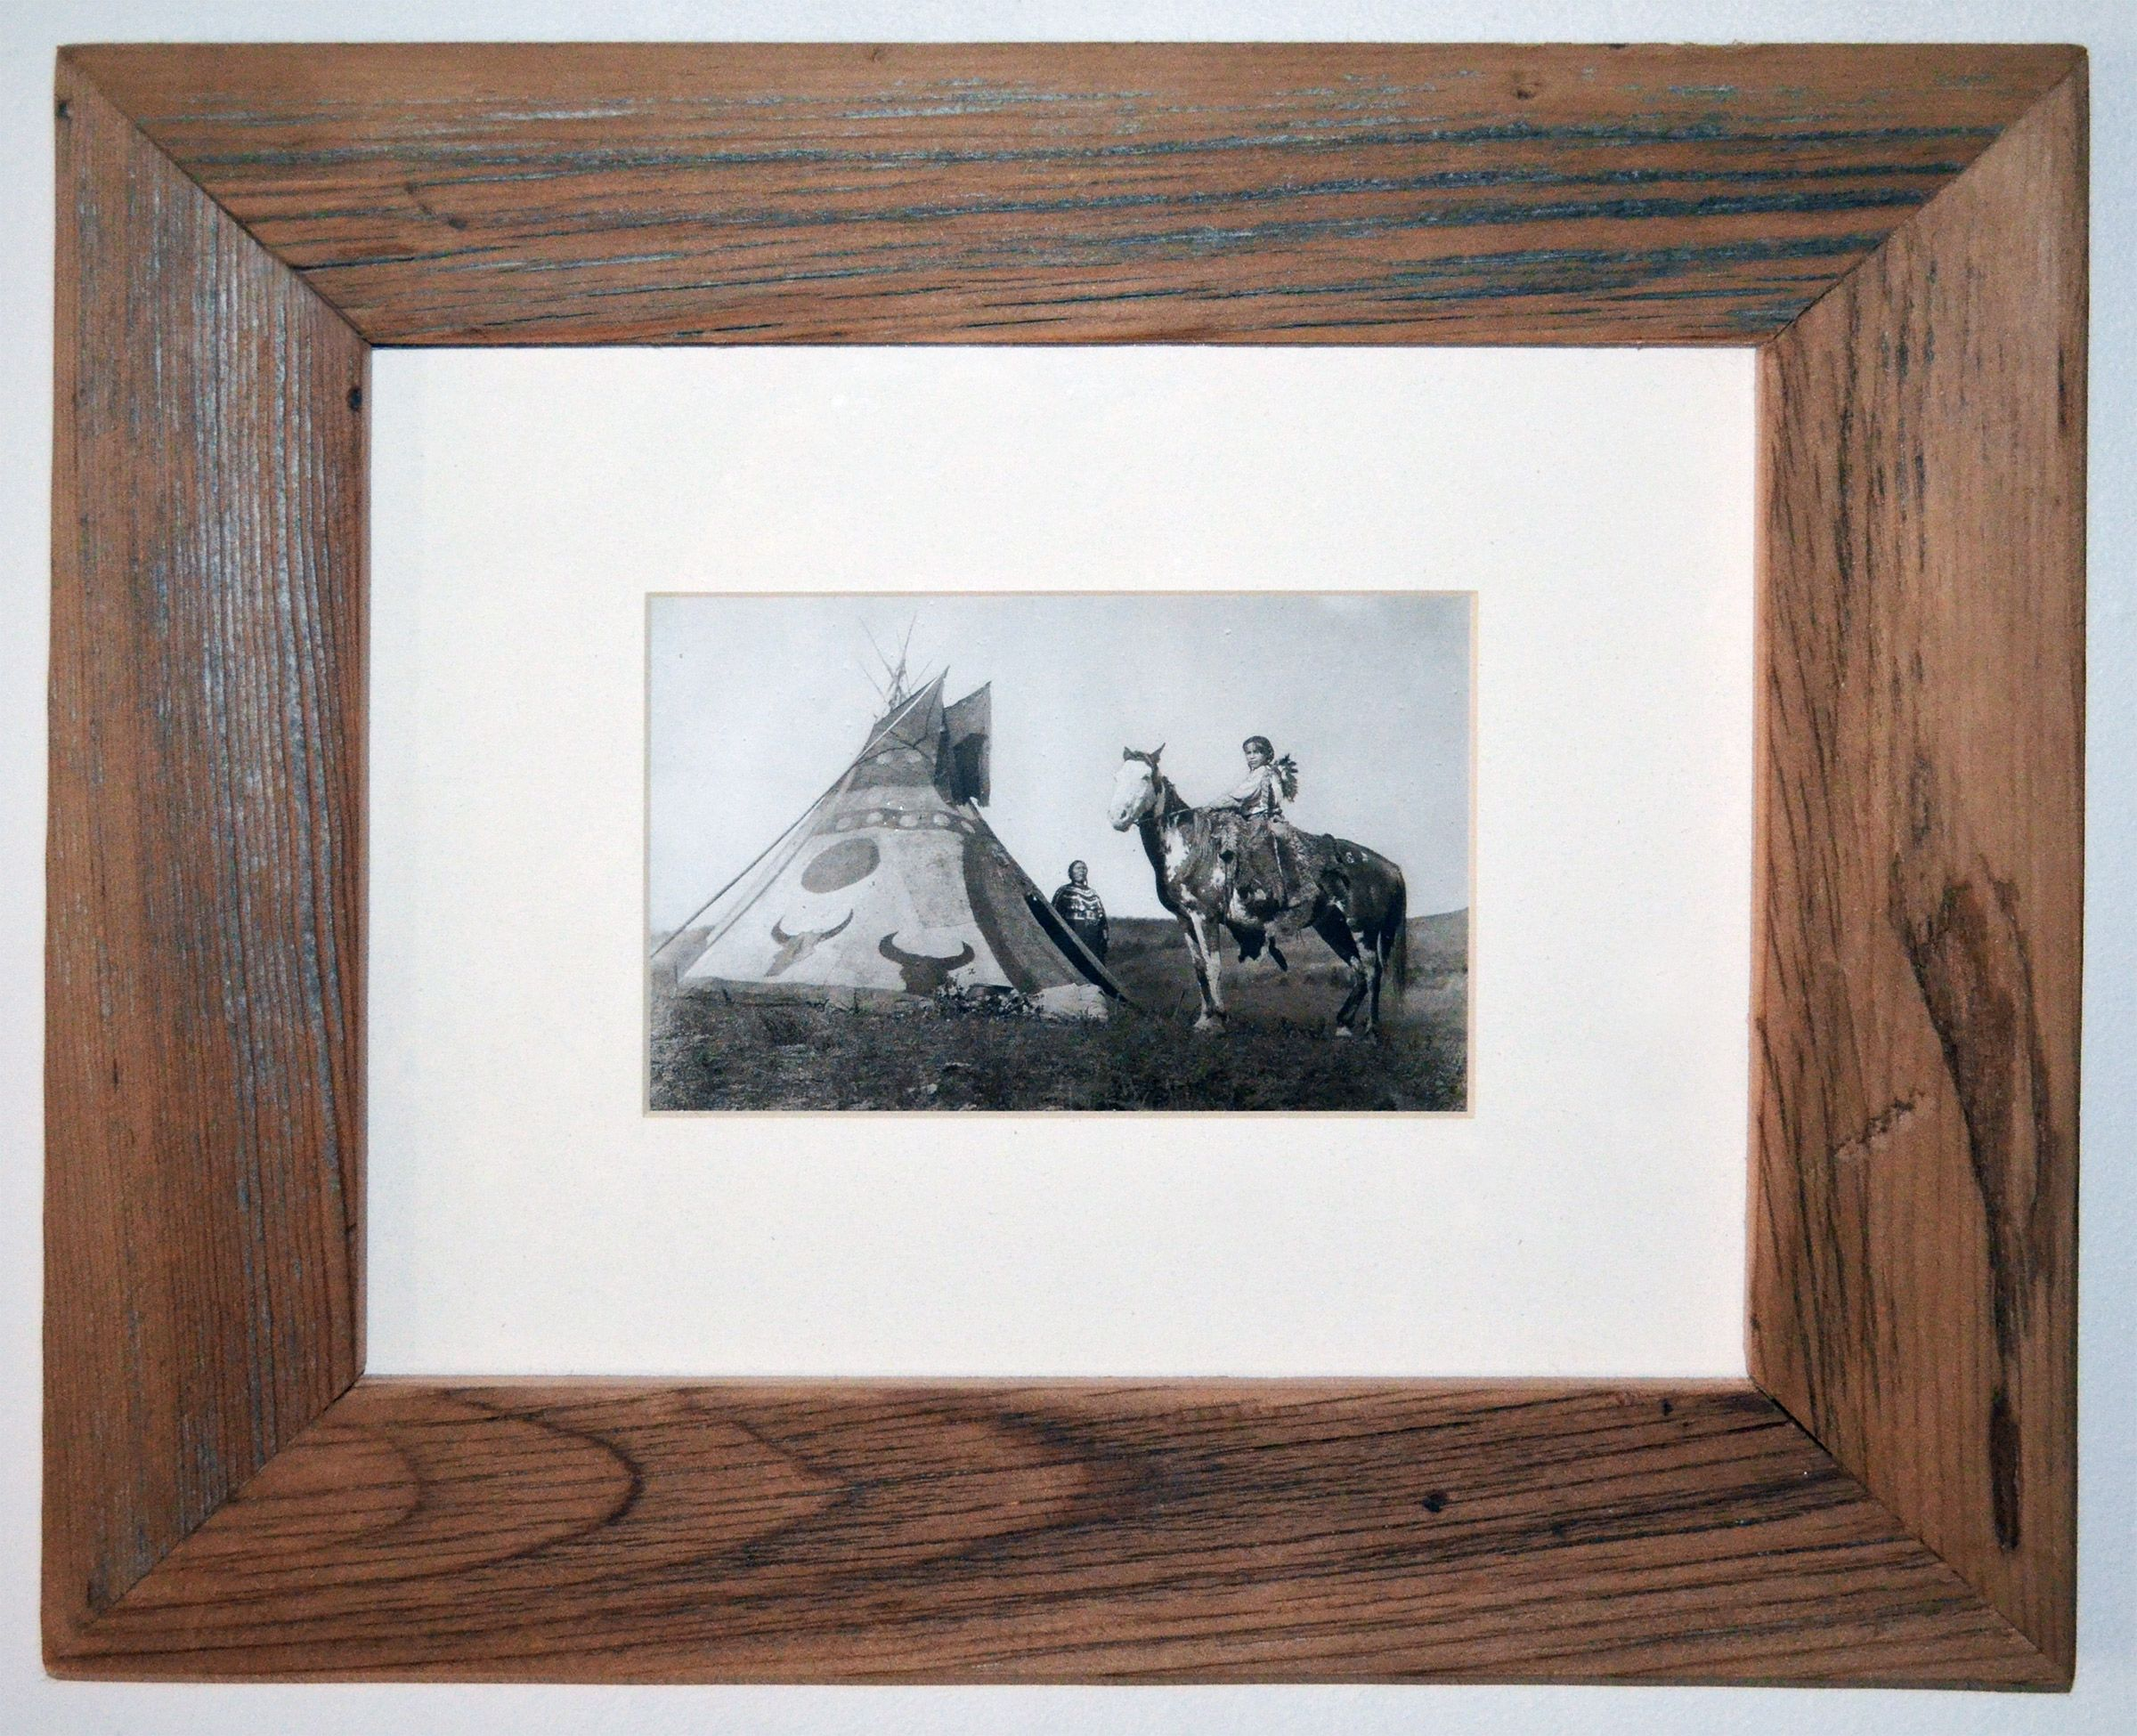 Buy Hand Crafted Rustic Picture Frames, made to order from ...